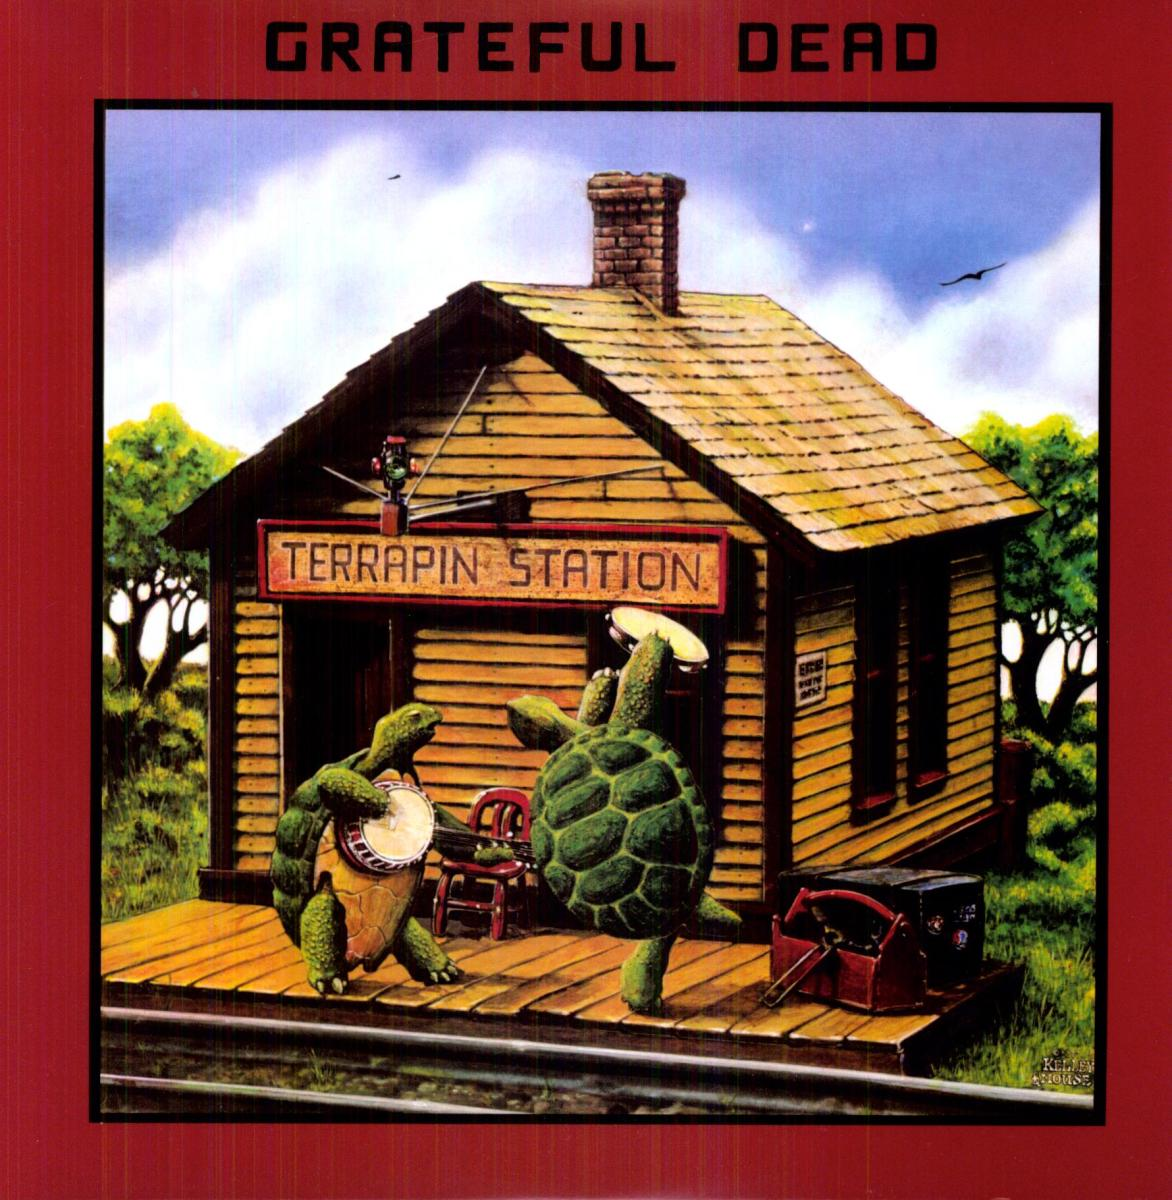 "Grateful Dead ""Terrapin Station"" Arista Records 3C-064-99306 12"" LP Vinyl Record US Pressing (1977) Album Cover Art by Alton Kelley & Stanley Mouse"